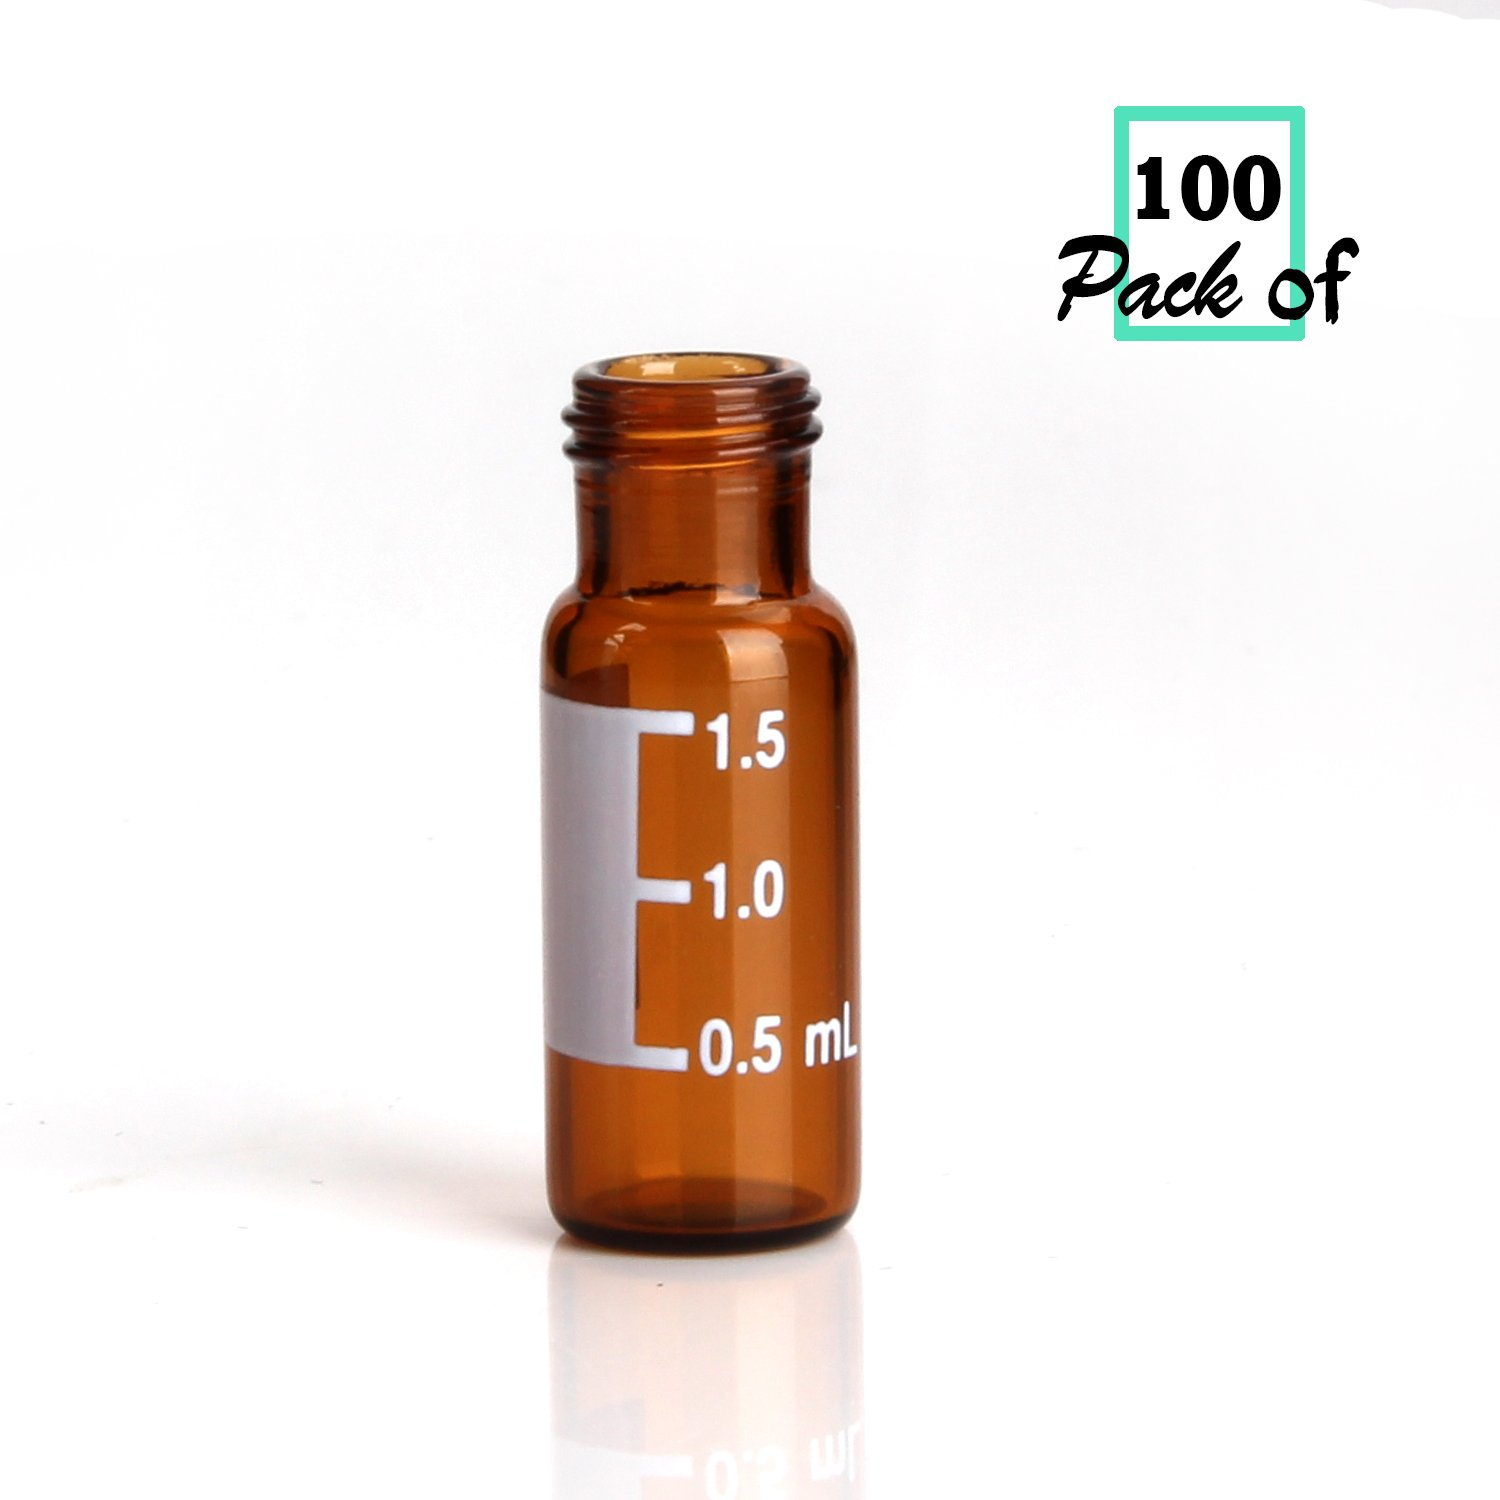 Autosampler Vials,2mL Amber Sample Vials with Write-on Spot and Graduations,Screw top 9-425 Thread Finish,12mm ID x 32mm L(Pack of 100)